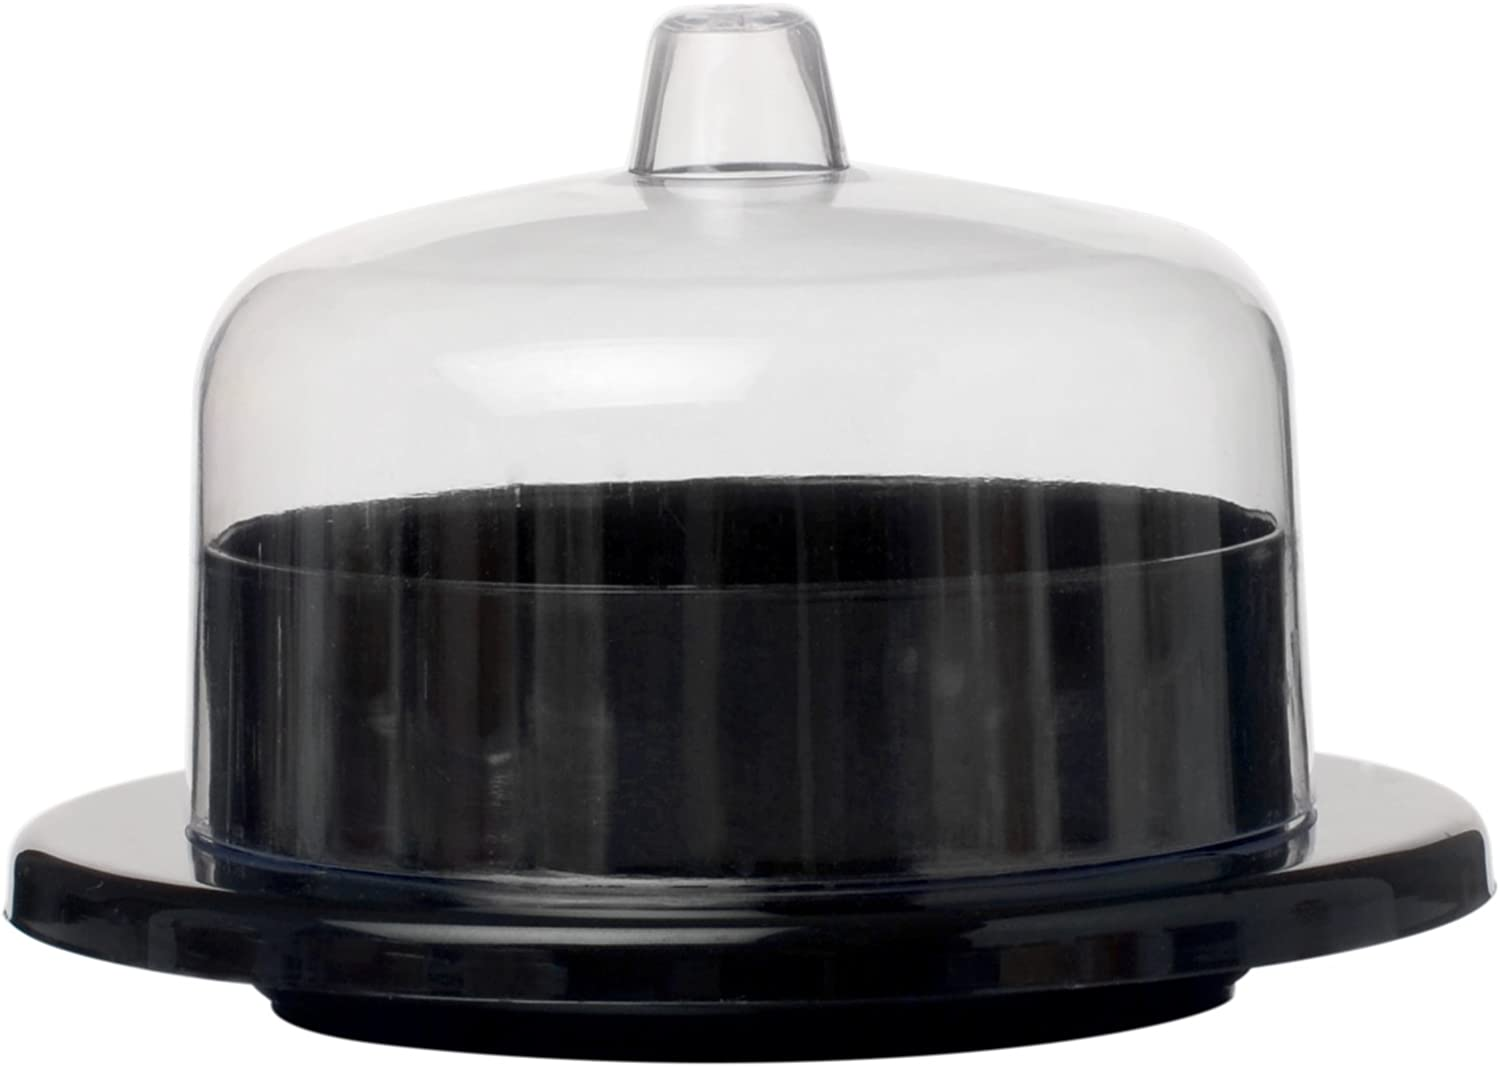 Tiny Temptations Fineline 6700-BK Round Tiny Dome with Lid, 3.25  Diameter 1.5  Height, Black, 10 12 120 Case